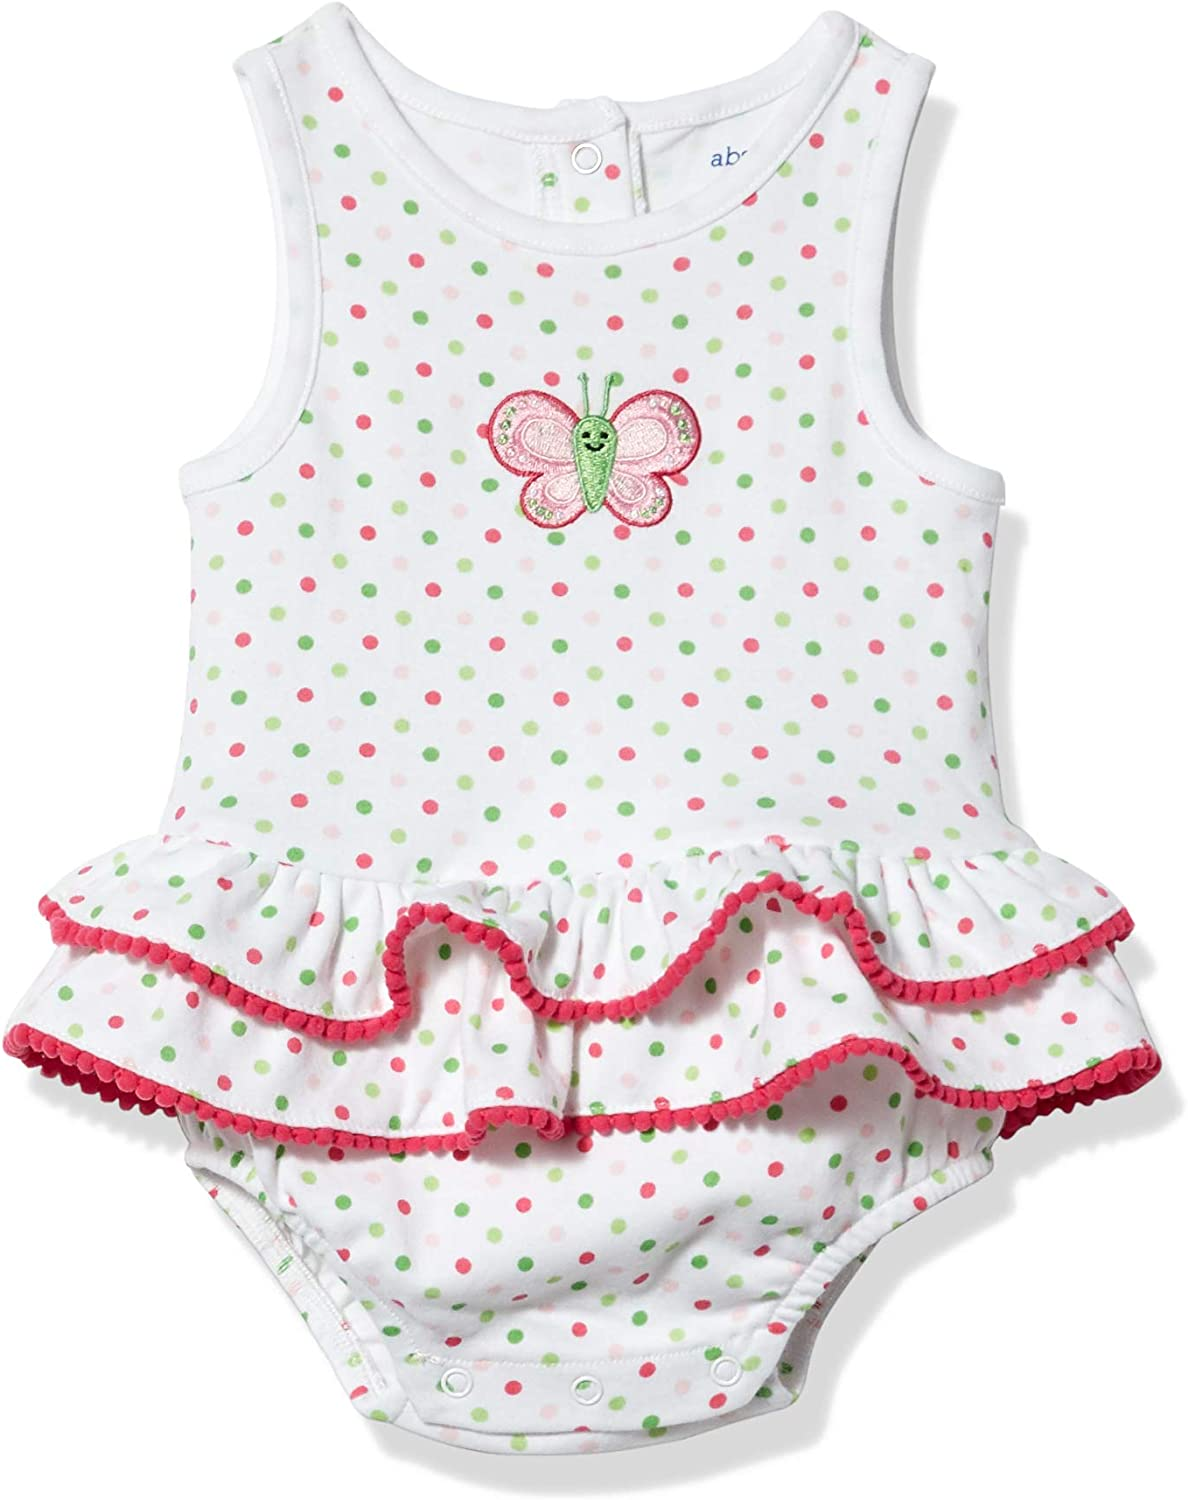 absorba Baby Daily bargain sale Girls' Romper All stores are sold Sleeveless